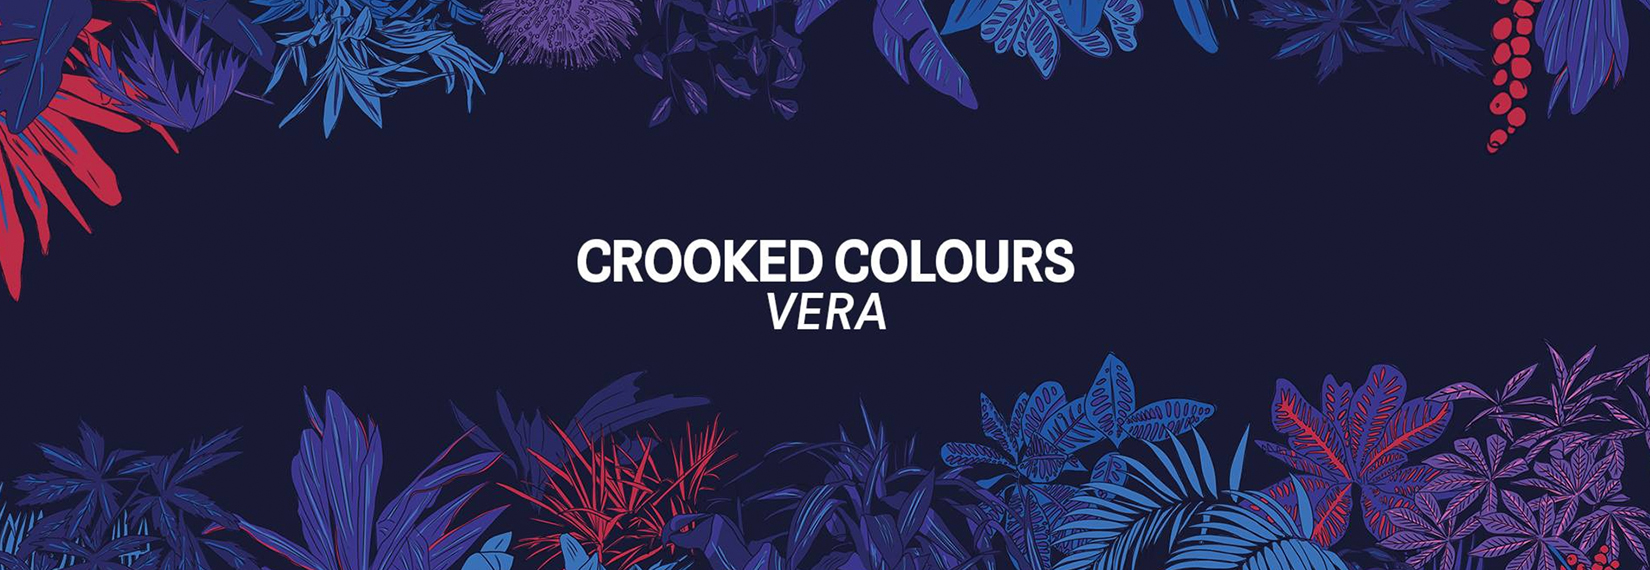 crooked-colours-vera-website-banner